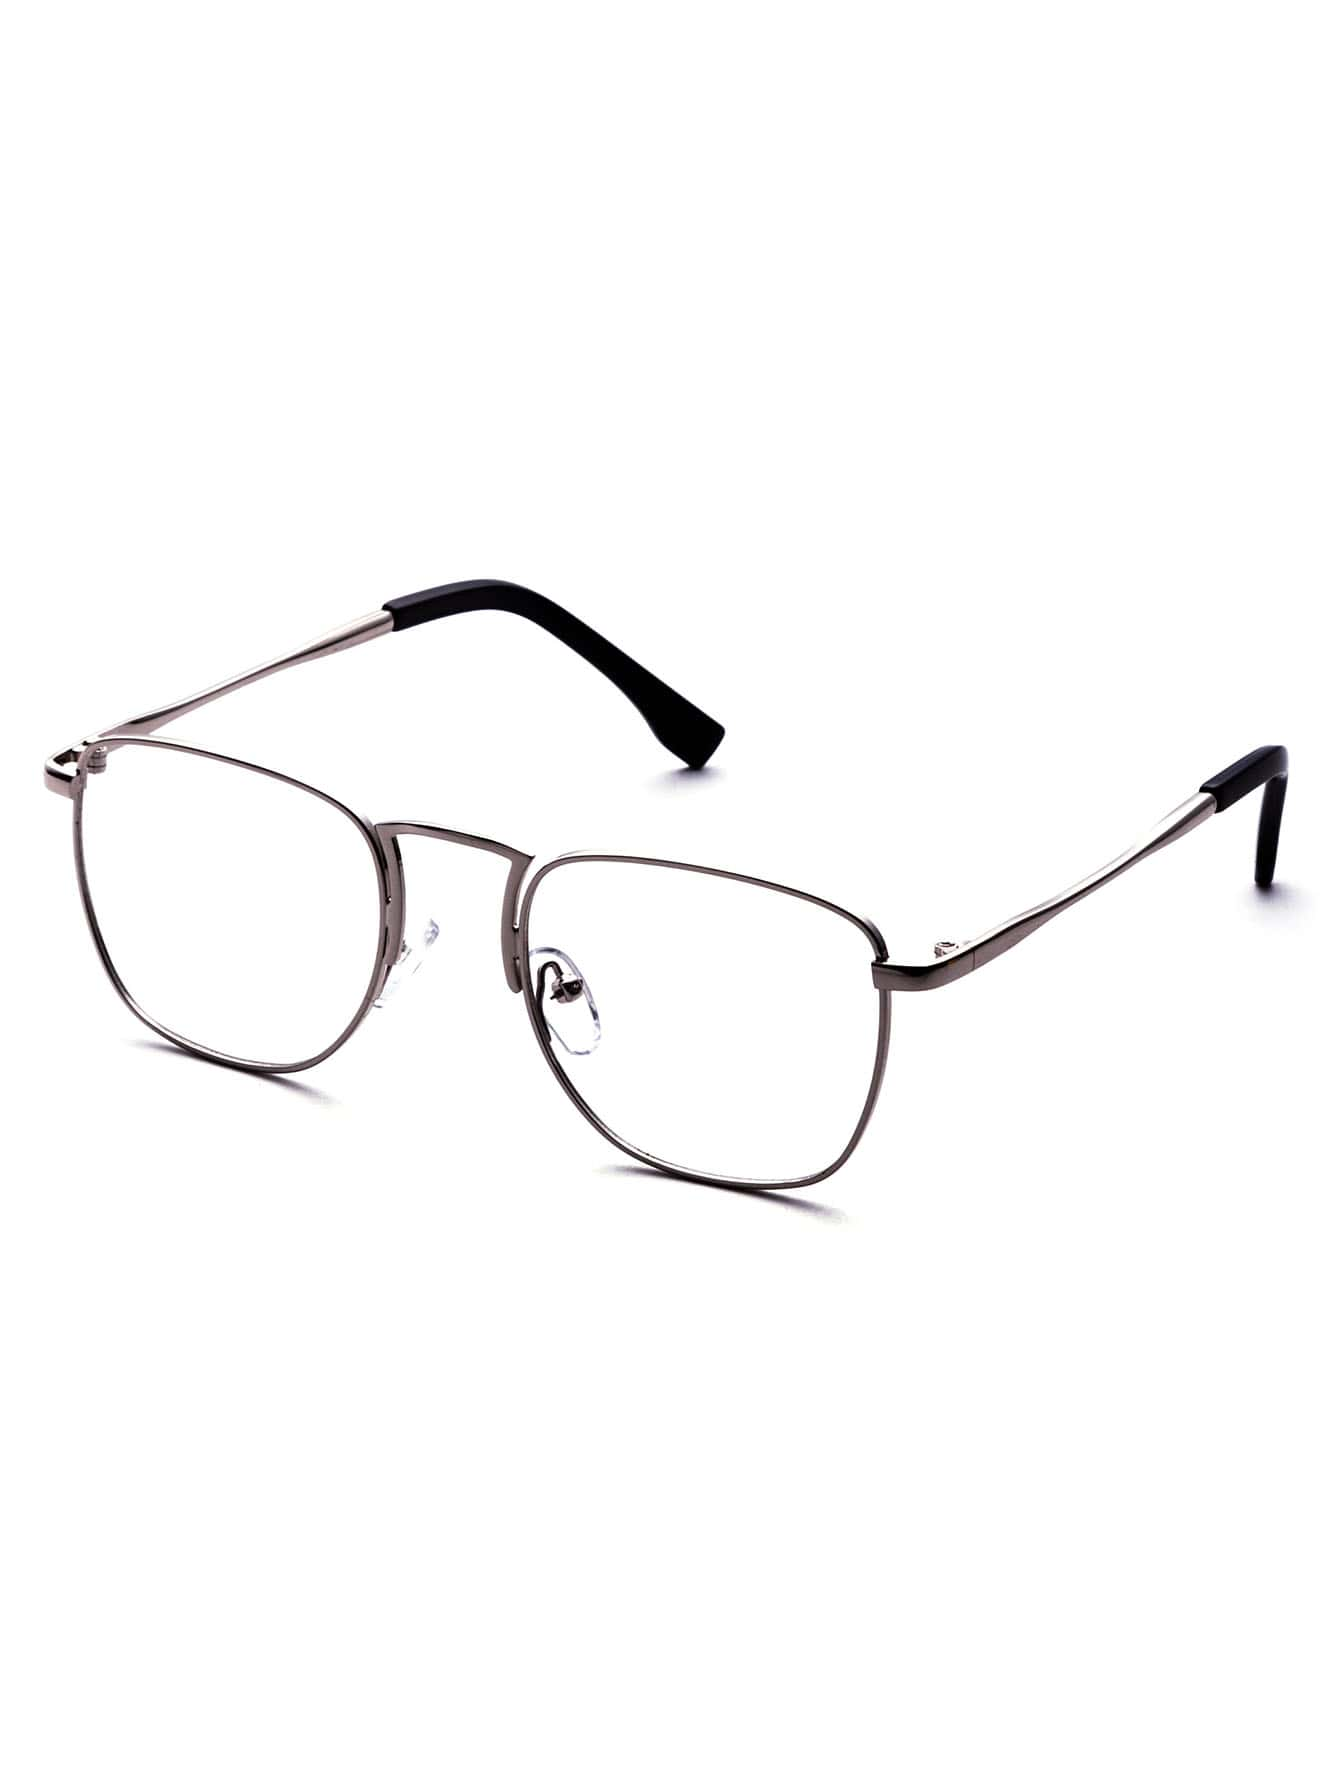 Silver Metal Frame Clear Lens GlassesSilver Metal Frame Clear Lens Glasses<br><br>color: Silver<br>size: None